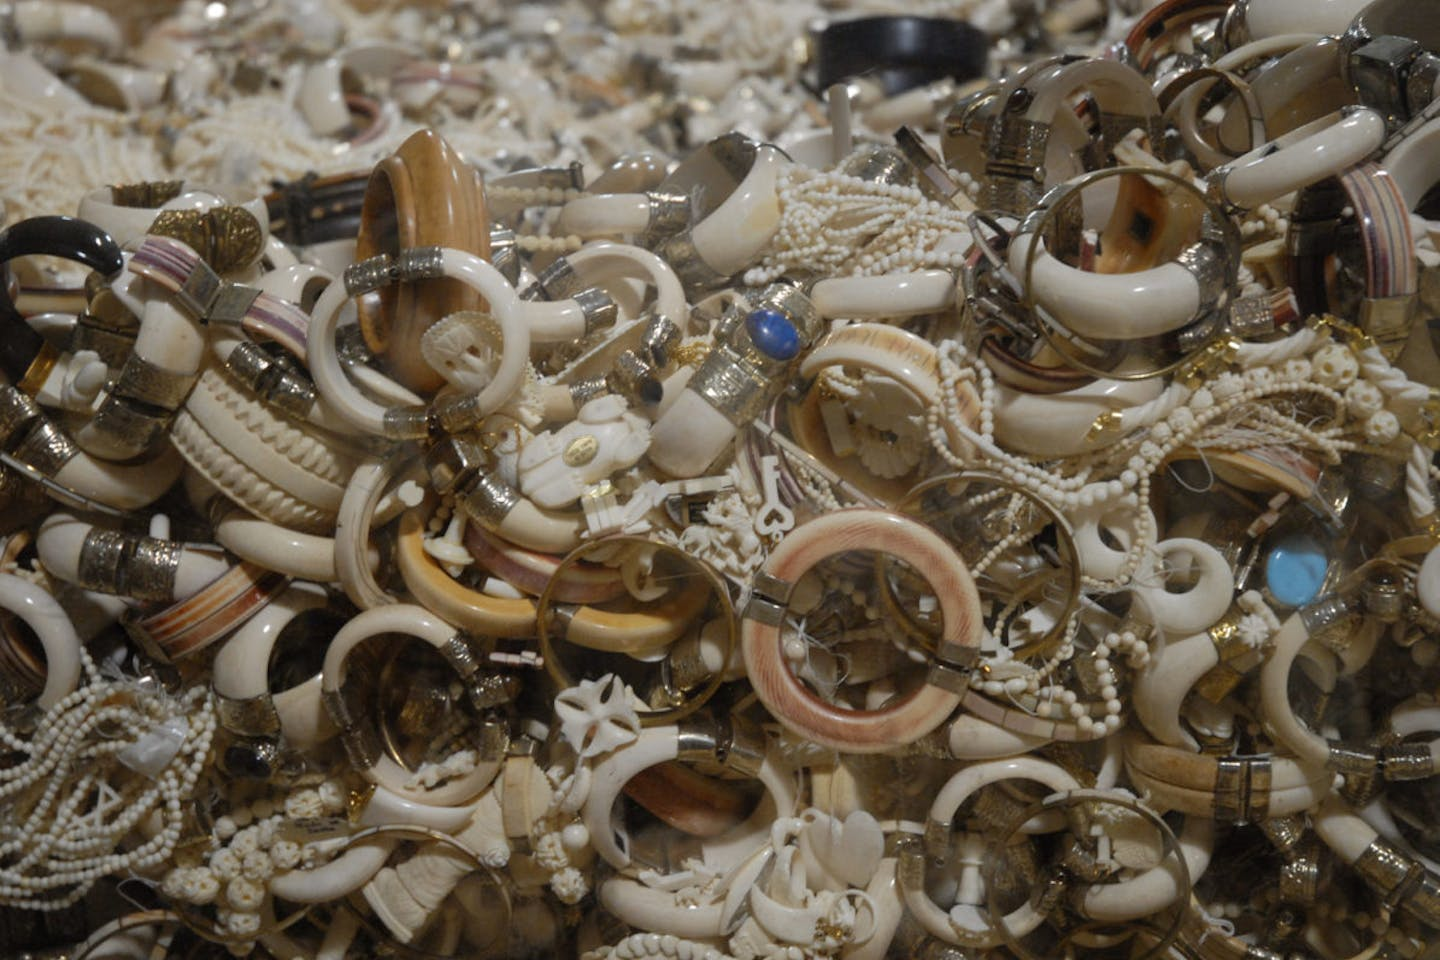 HK Ivory Trade soon to stop